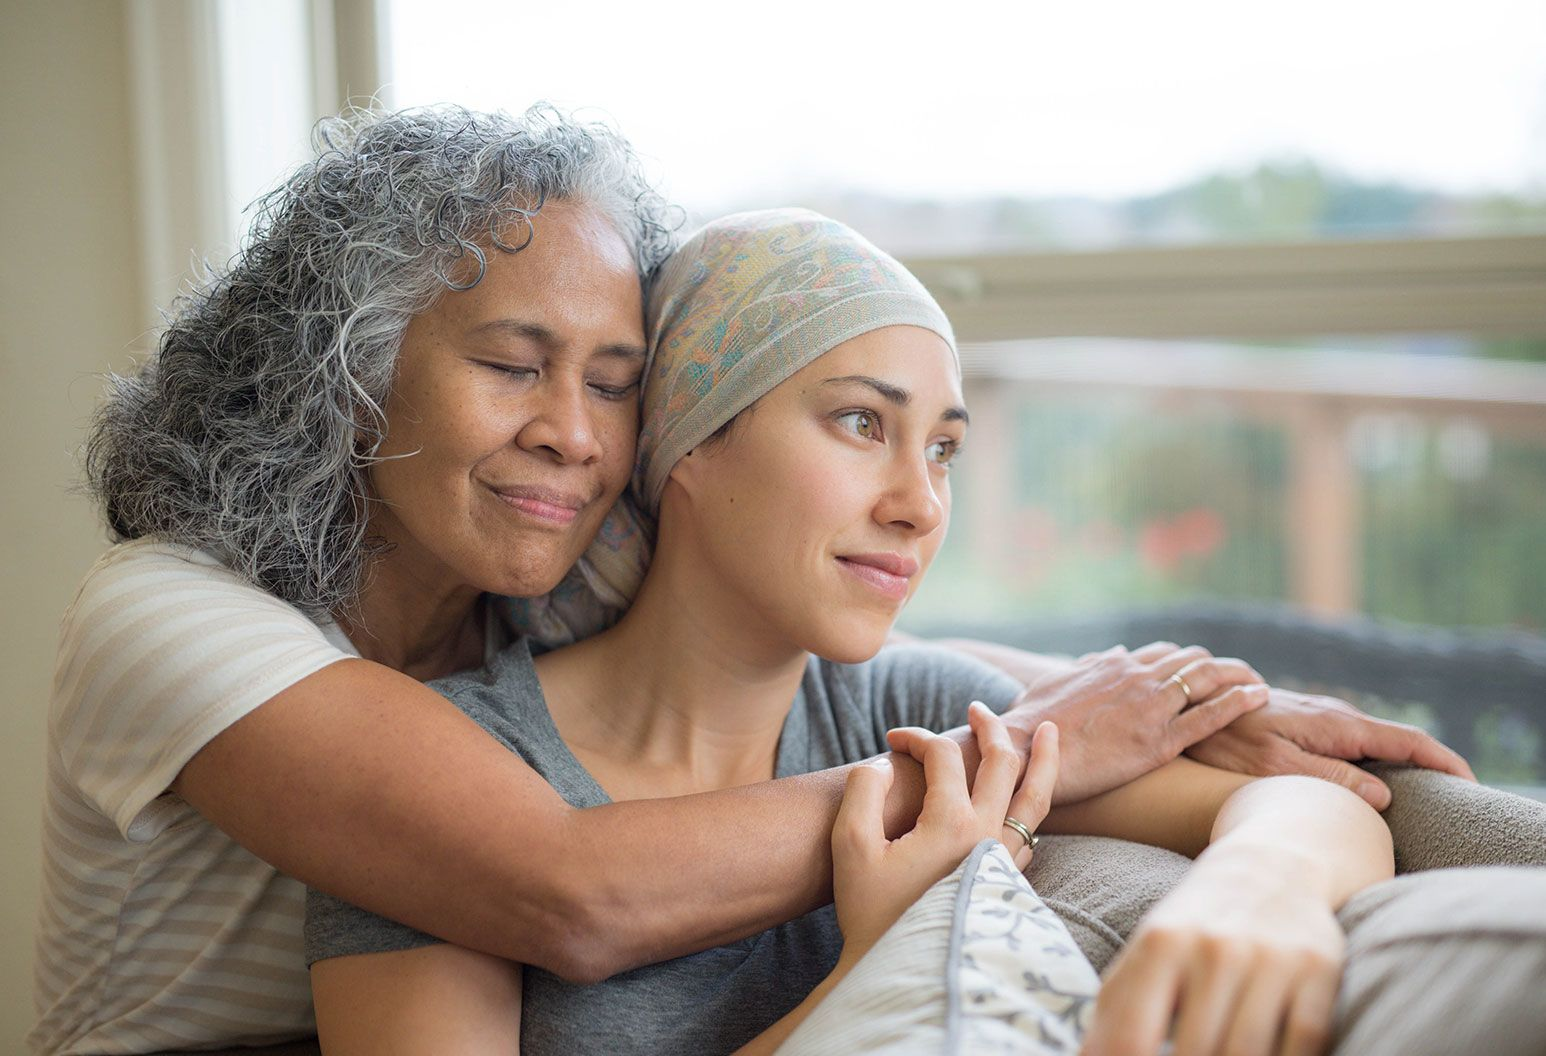 An older woman with grey hair gives a comforting hug from behind of a younger woman sitting on a couch. The younger woman is wearing a bandana to cover her hair and looks out the window.